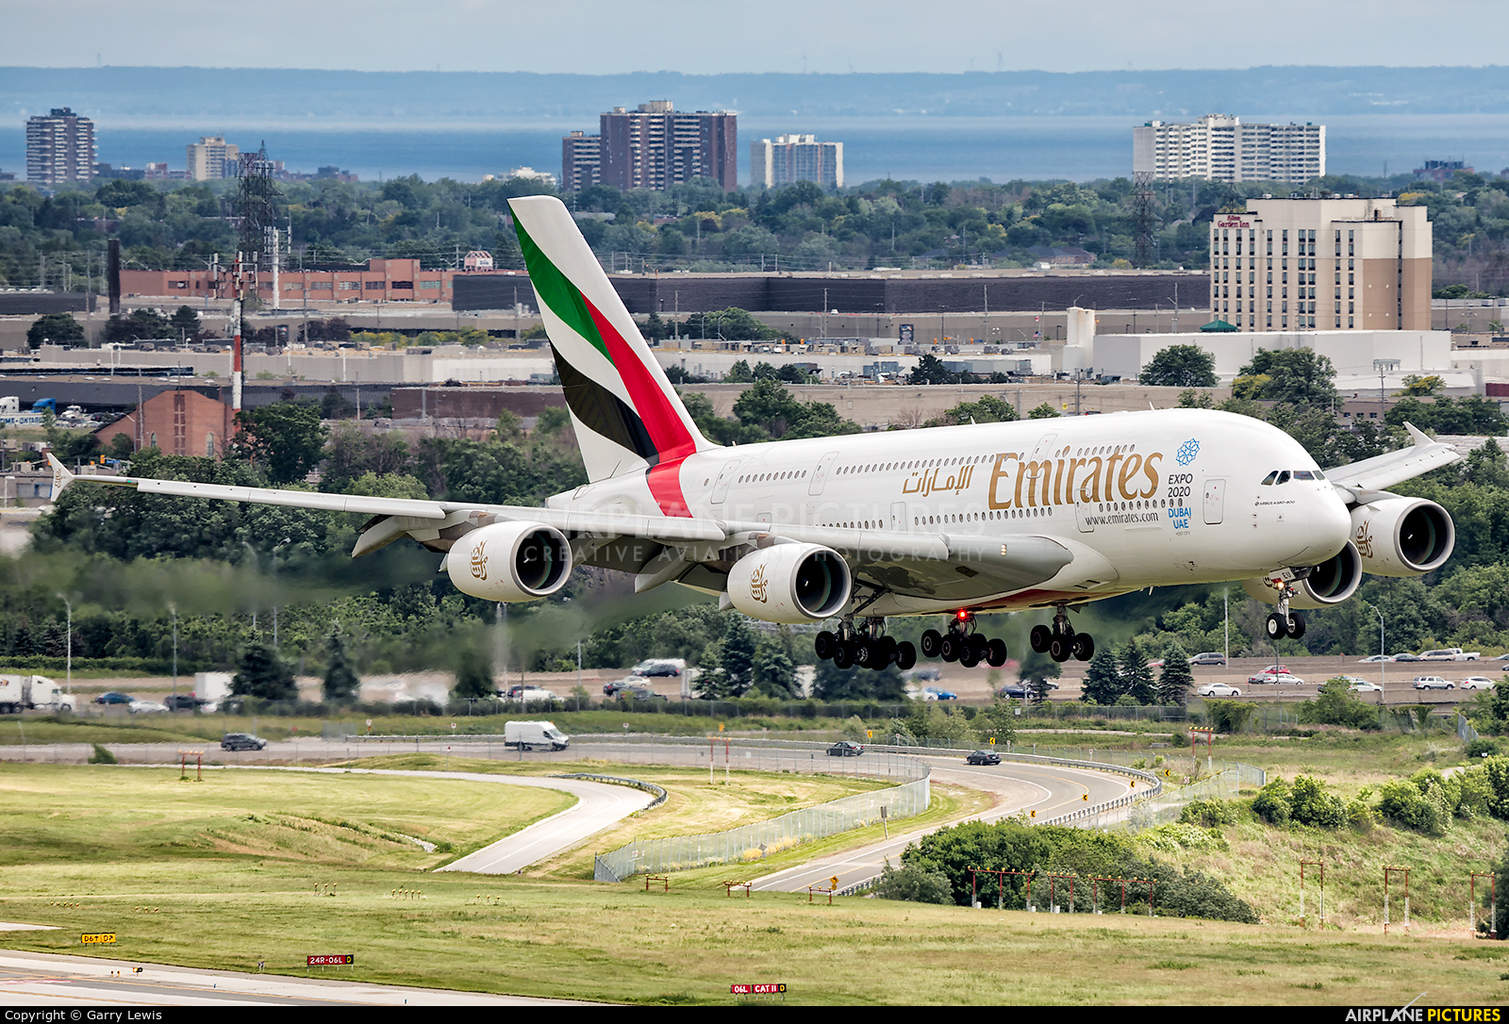 Emirates pilot grounded after refusing to take alcohol & drug test